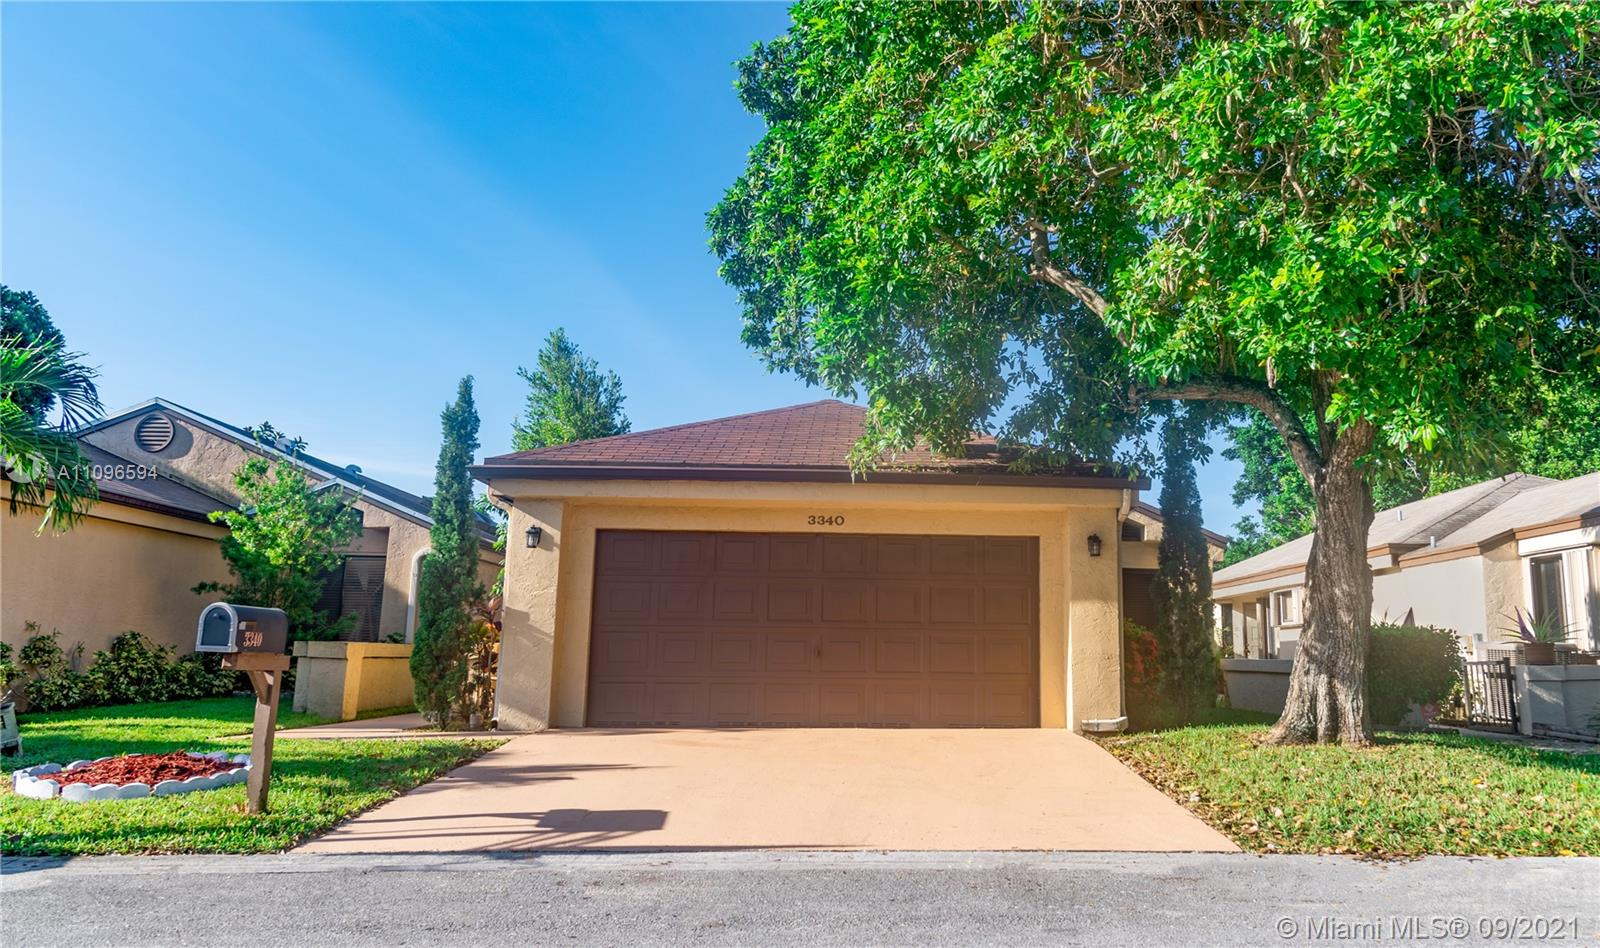 3340 NW 22nd St, Coconut Creek, Florida 33066